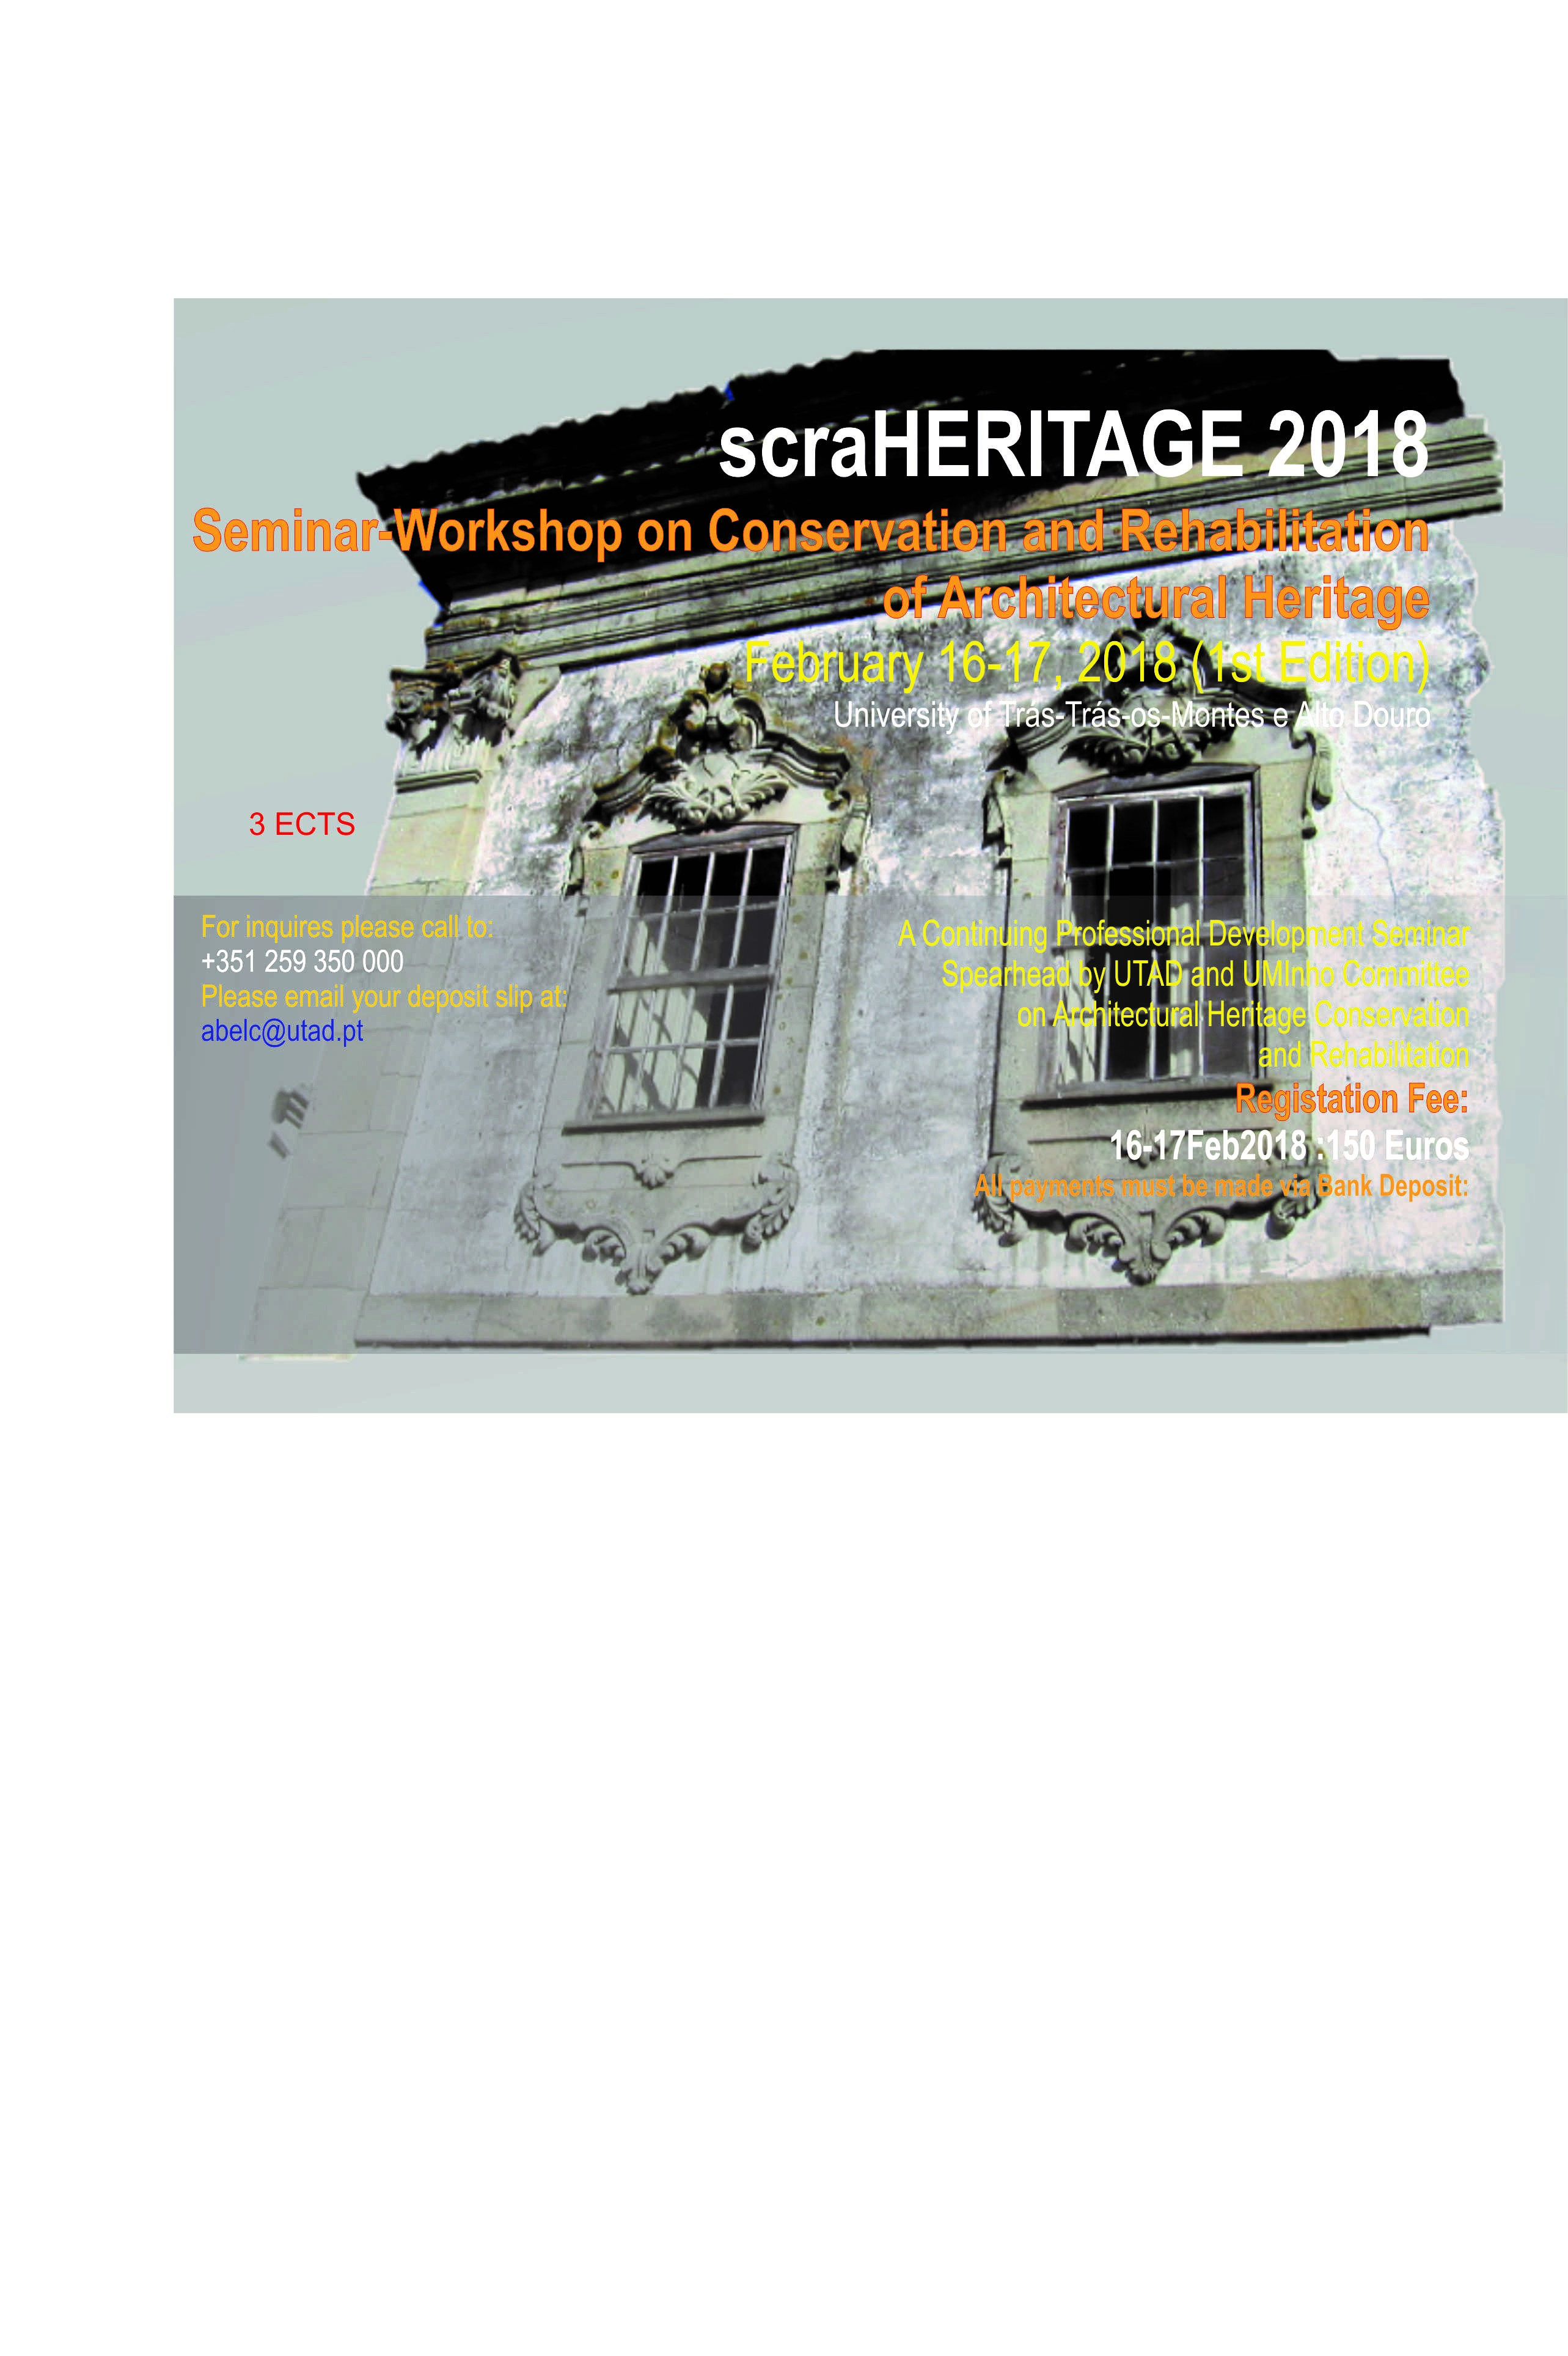 scraHERITAGE2018/I: SEMIDESCRIÇÃO GERAL DO EVENTO  A criação do Curso de Pós-Graduação em Estudos Avançados de Conservação do Património Arquitectónico Rural é justificada, a níNAR WORKSHOP ON CONSERVATION AND REHABILITATION OF ARCHITECTURAL HERITAGE